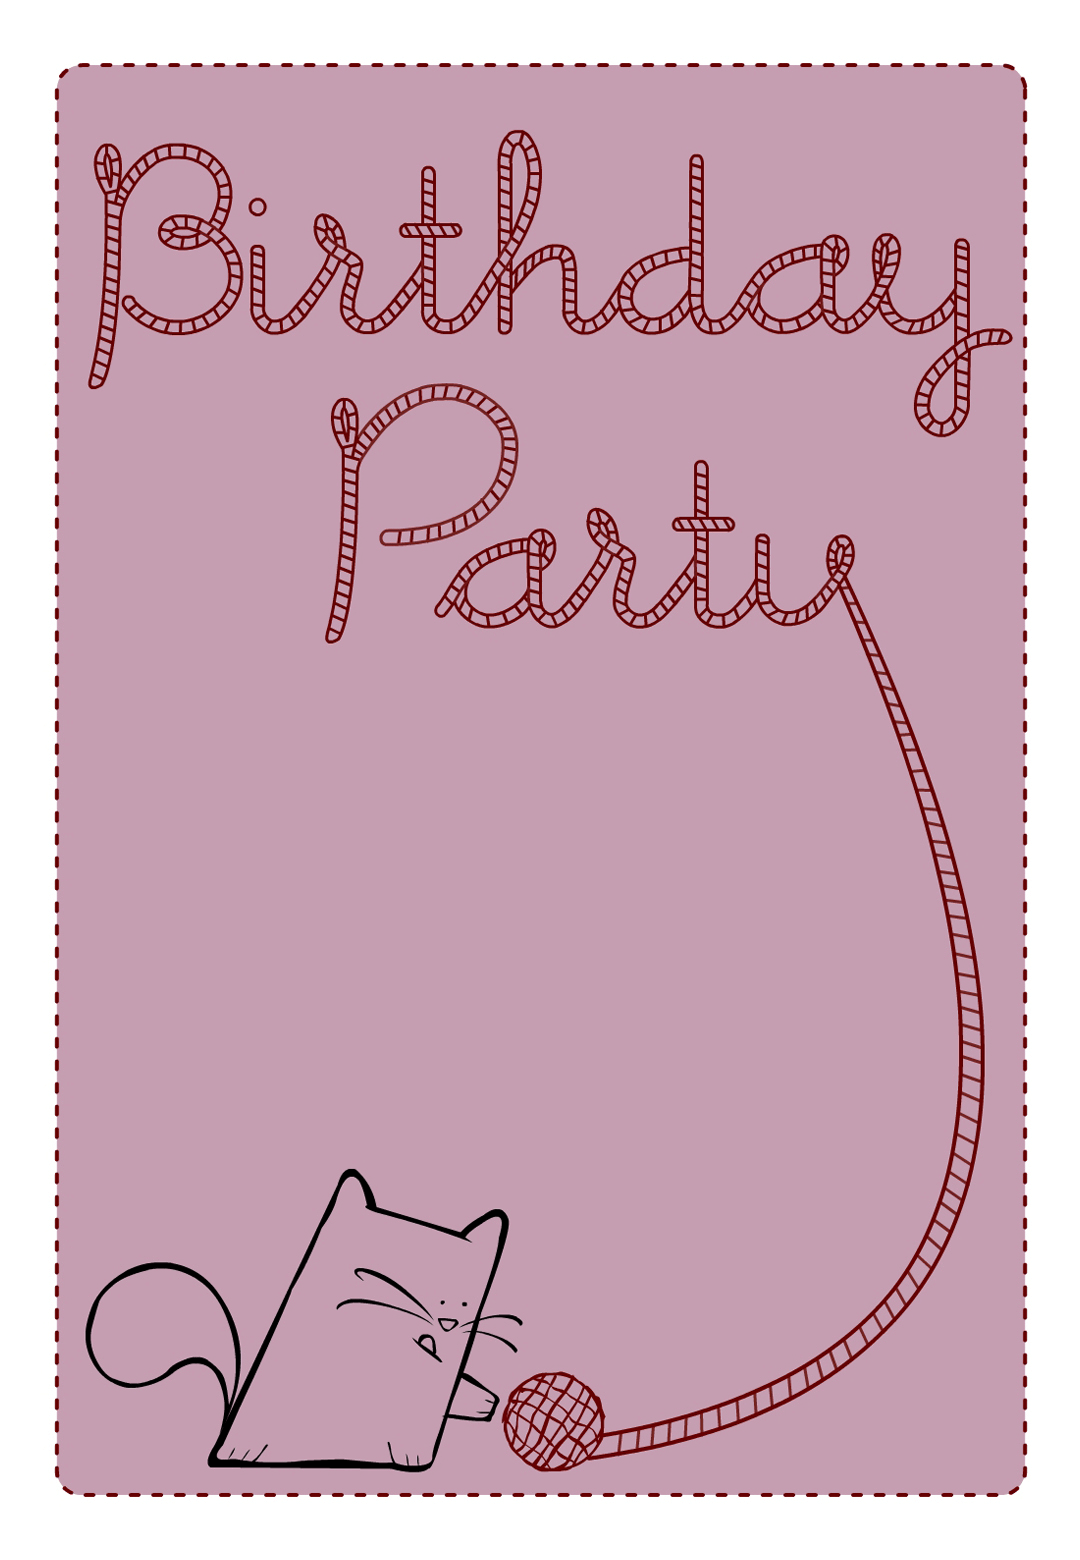 Birthday party cat free printable birthday invitation template birthday party cat free printable birthday invitation template greetings island stopboris Images